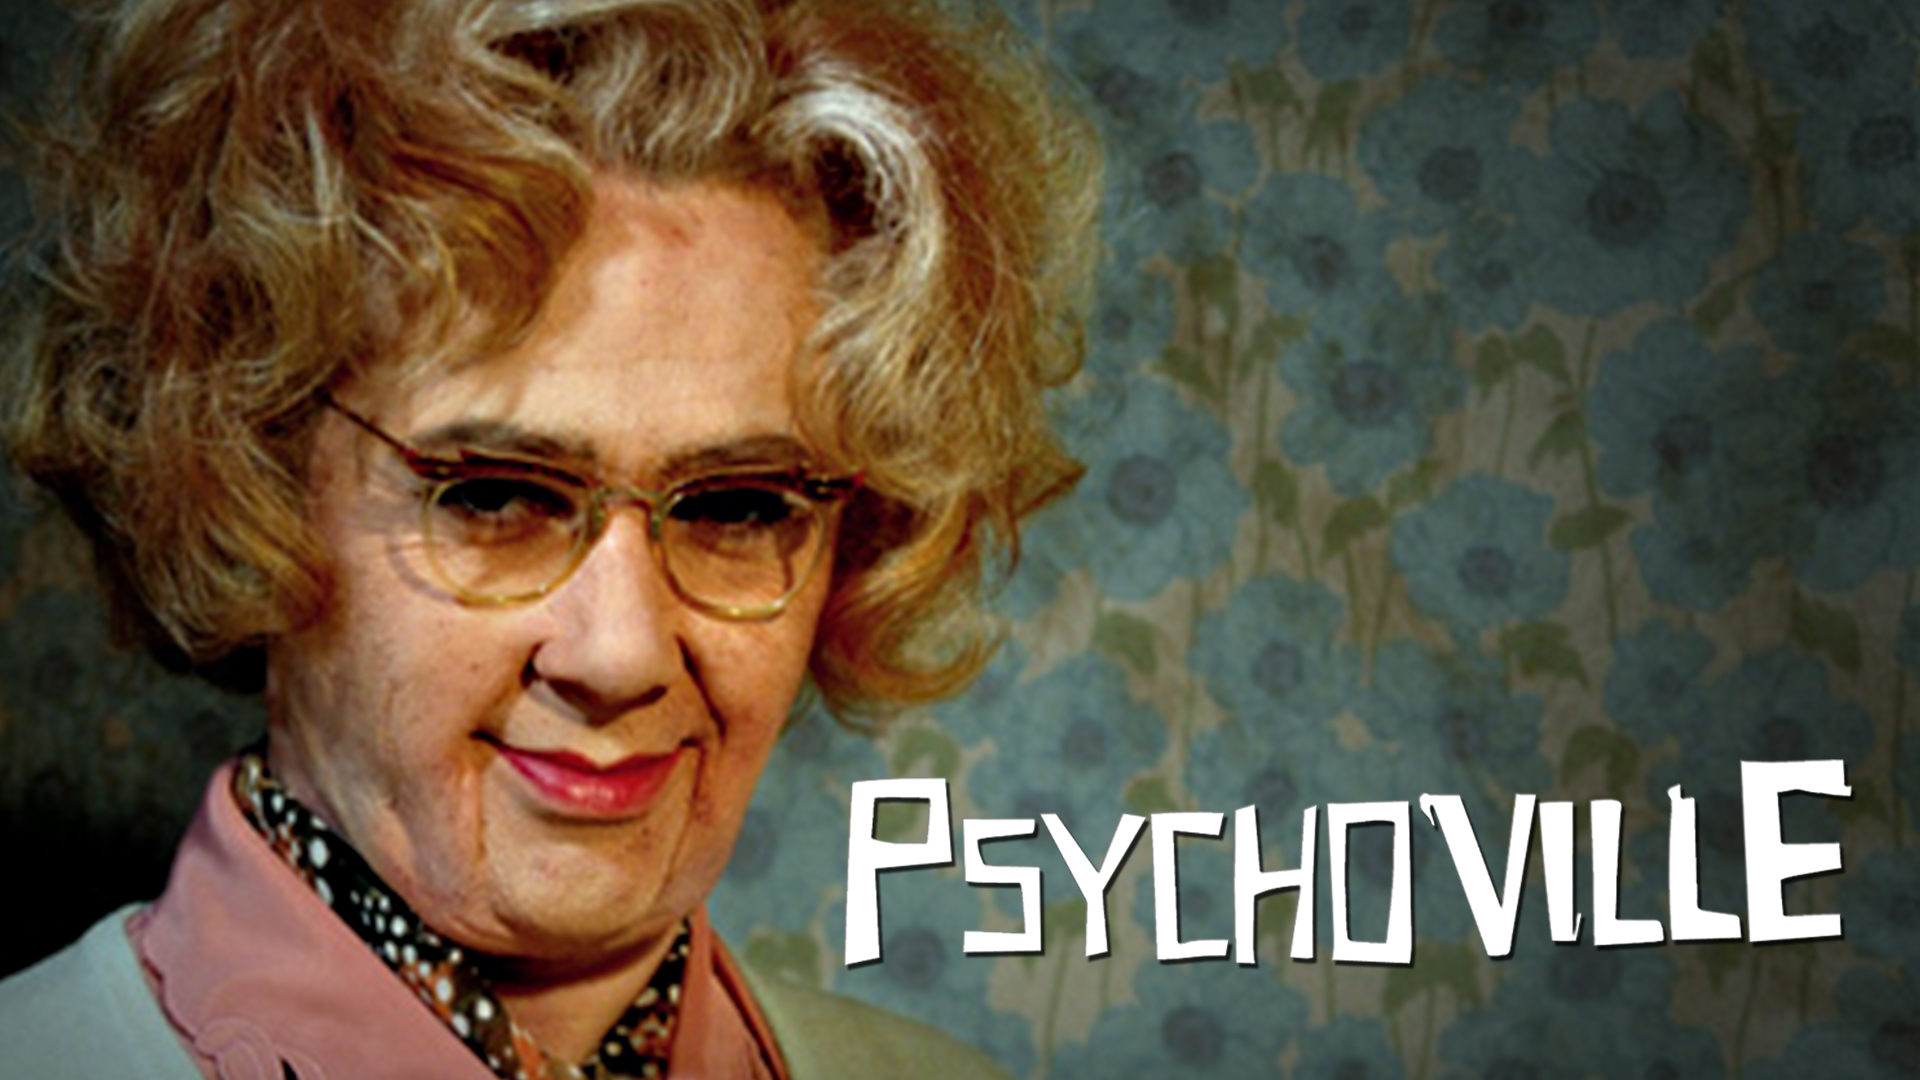 projectbanner_psychoville_r_1080_01